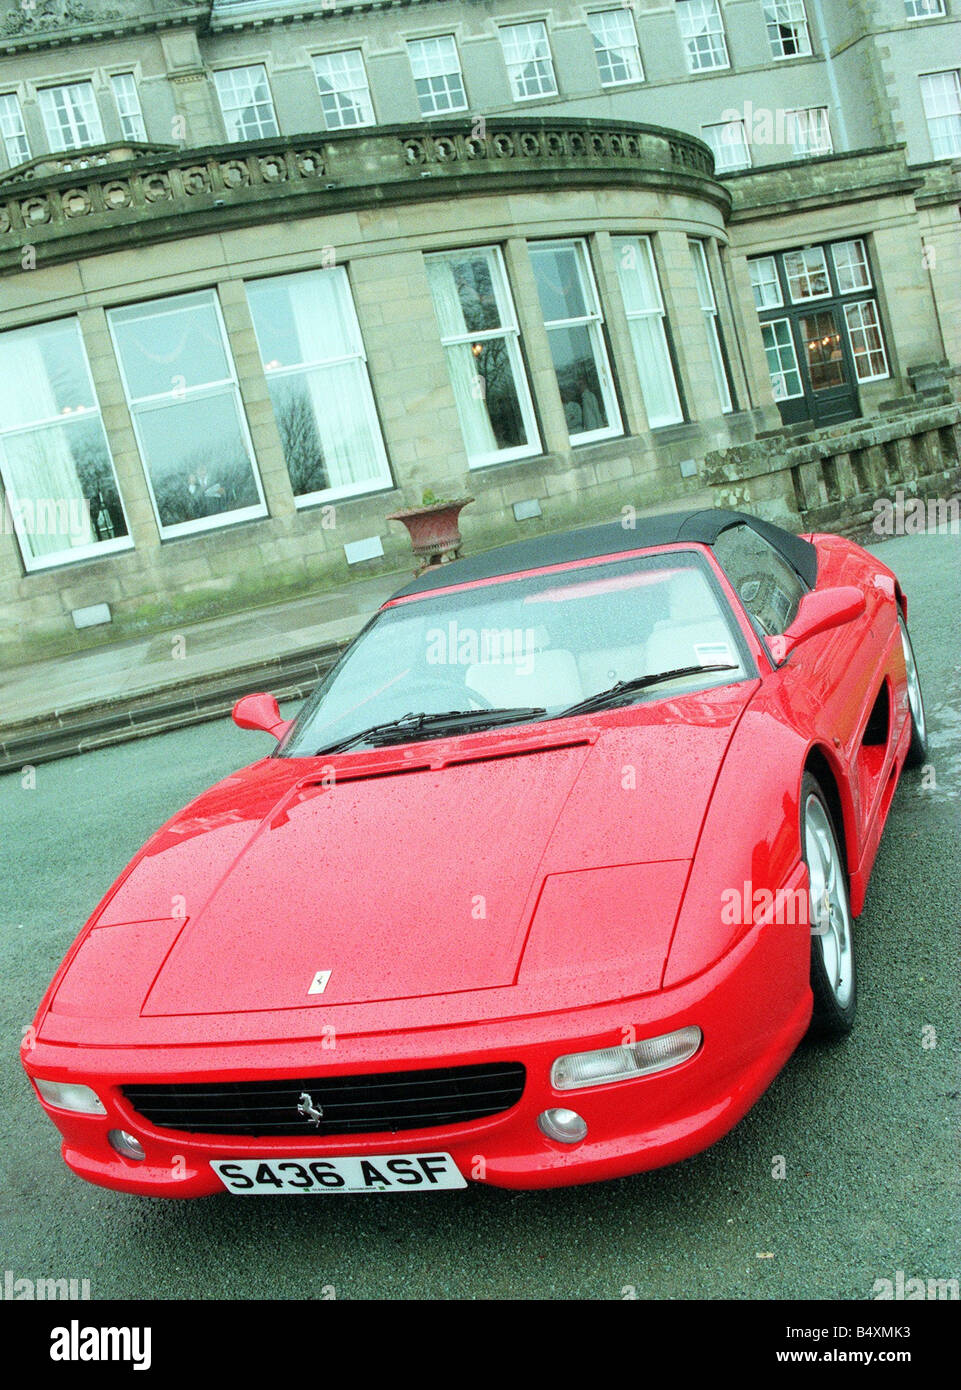 Ferrari Cars Lineup At The Gleneagles Hotel Pictured Is The 355 FI Spider